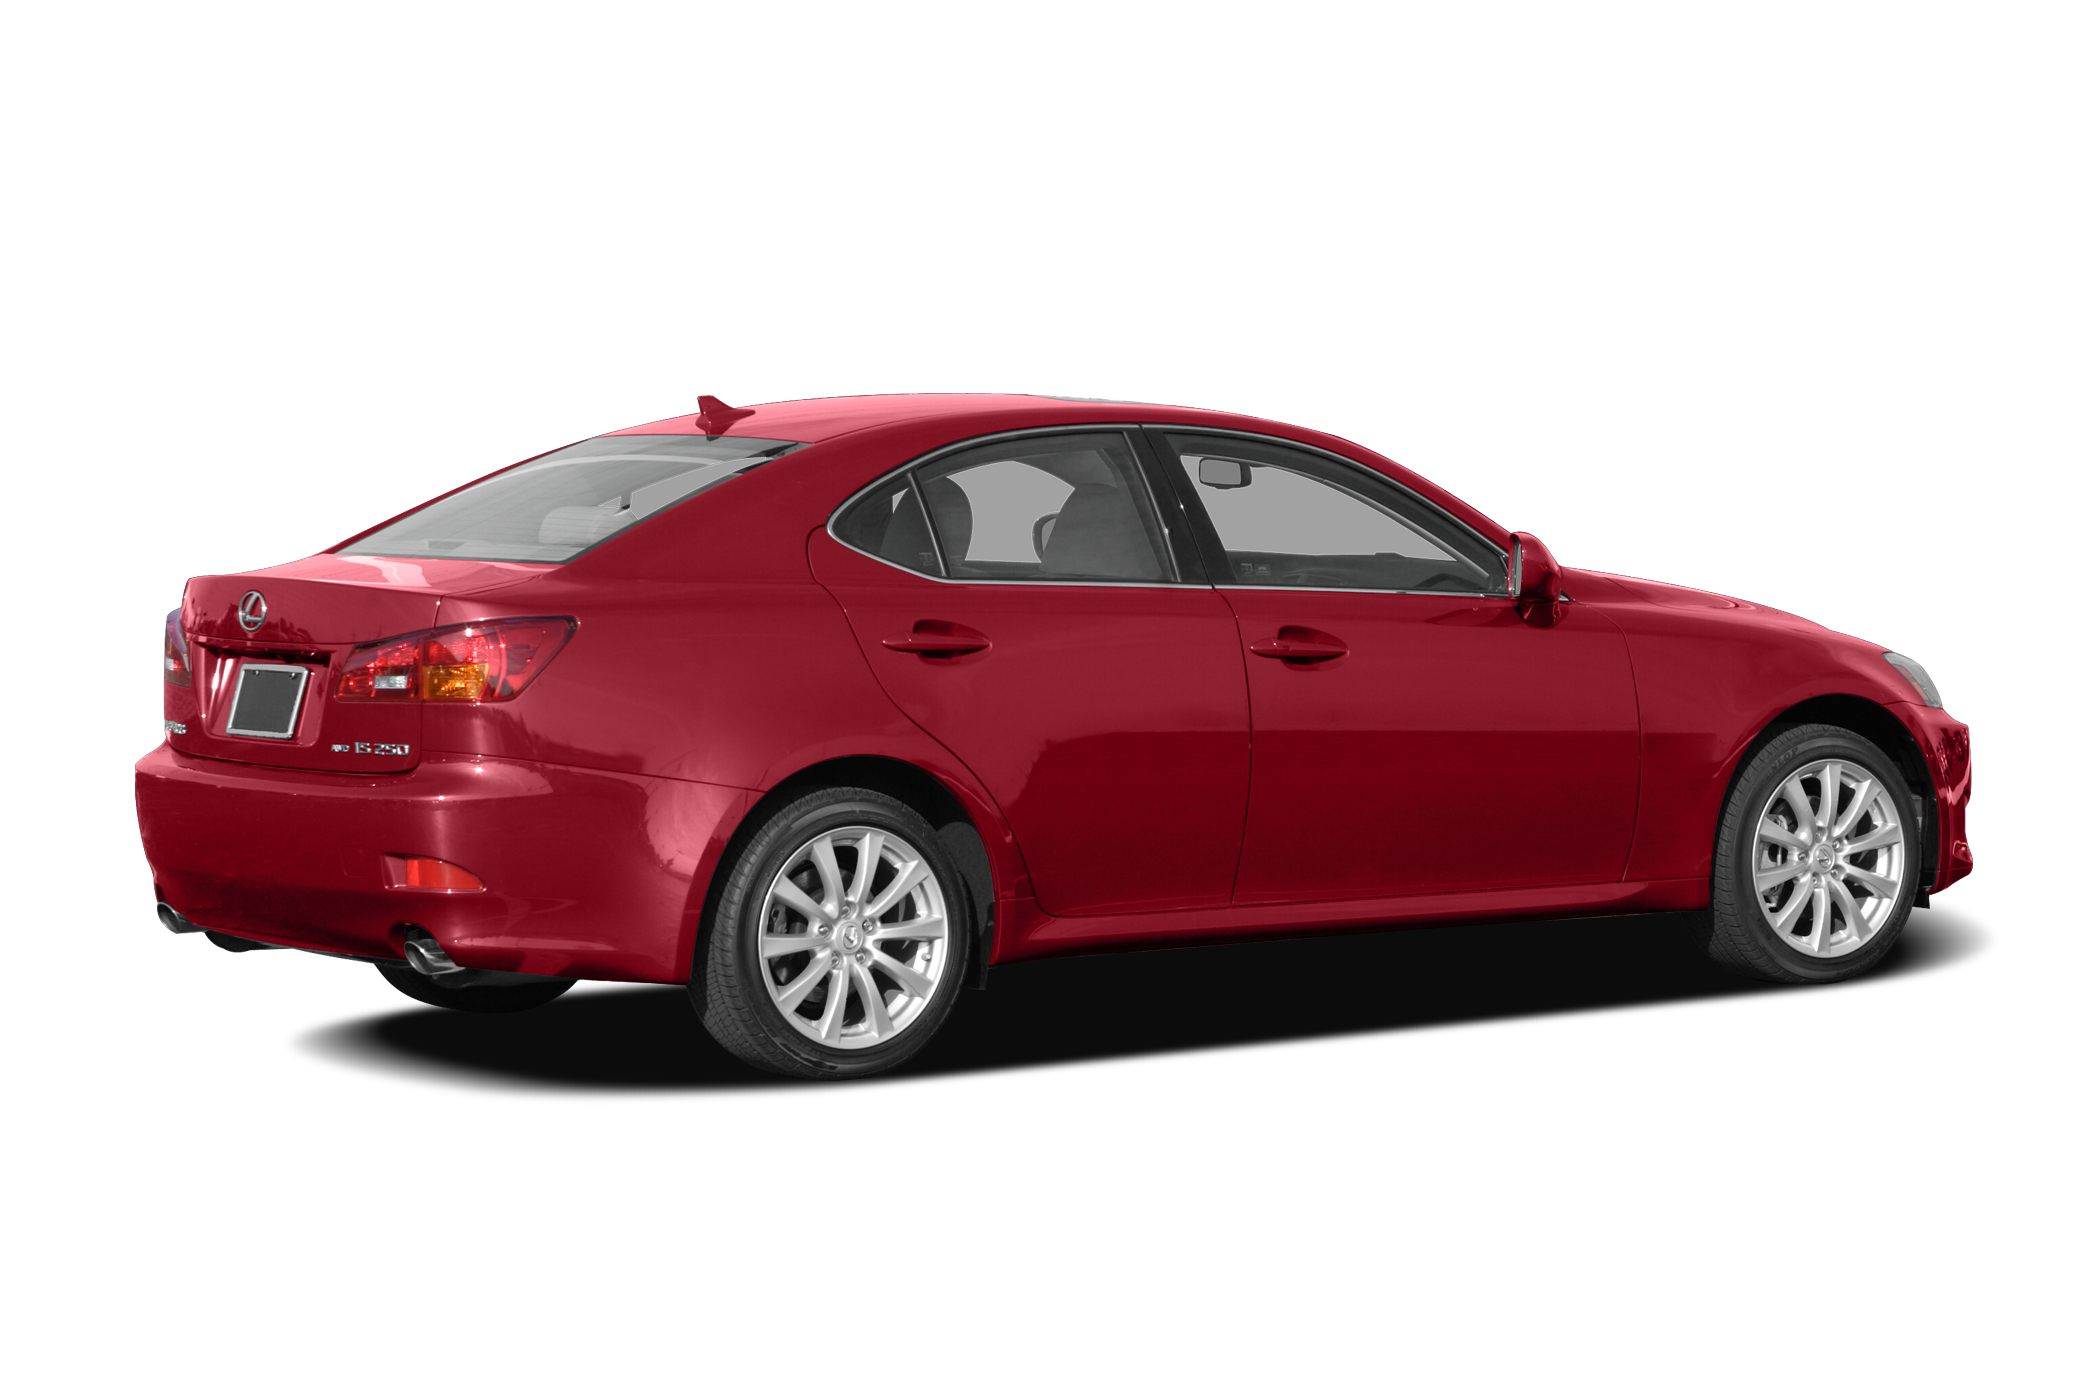 2007 Lexus IS 250 Base 3-DAY EXCHANGEONE PRICE STOP NO HASSLE NO HAGGLE CAR BUYING EXPERIEN